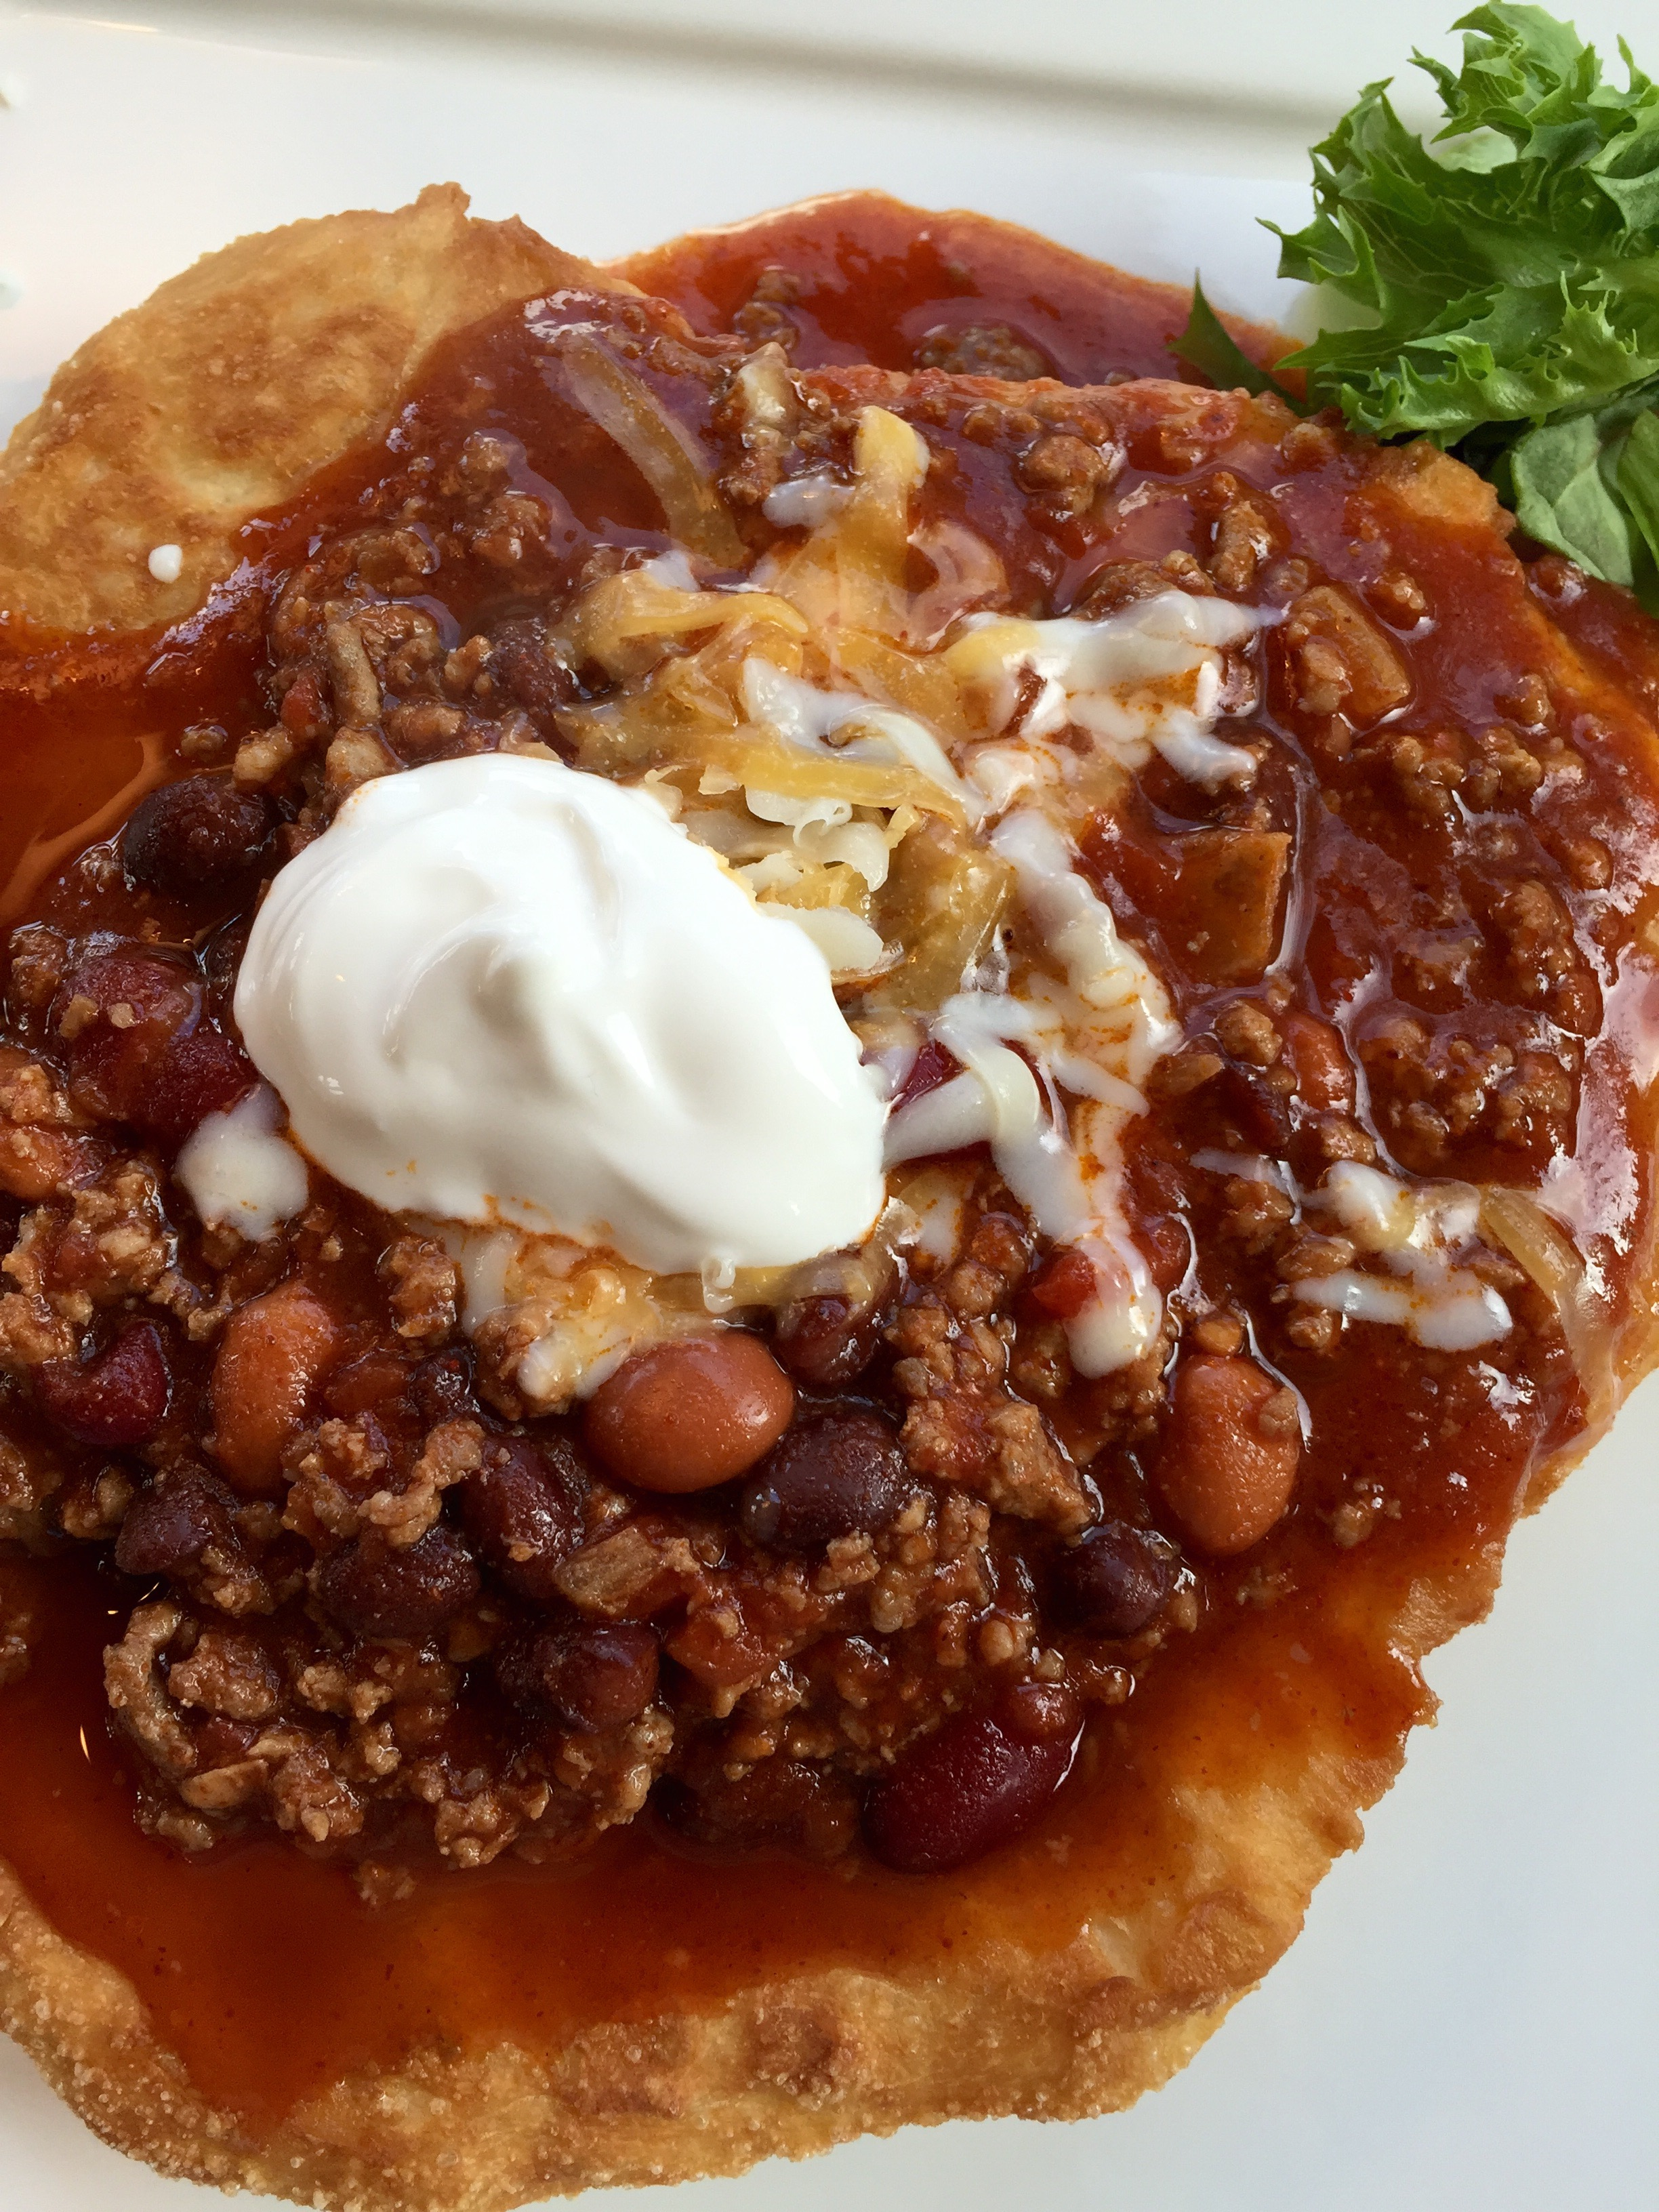 Navajo tacos the food nanny navajo tacos are an easy buffet style meal that everyone will enjoy forumfinder Images